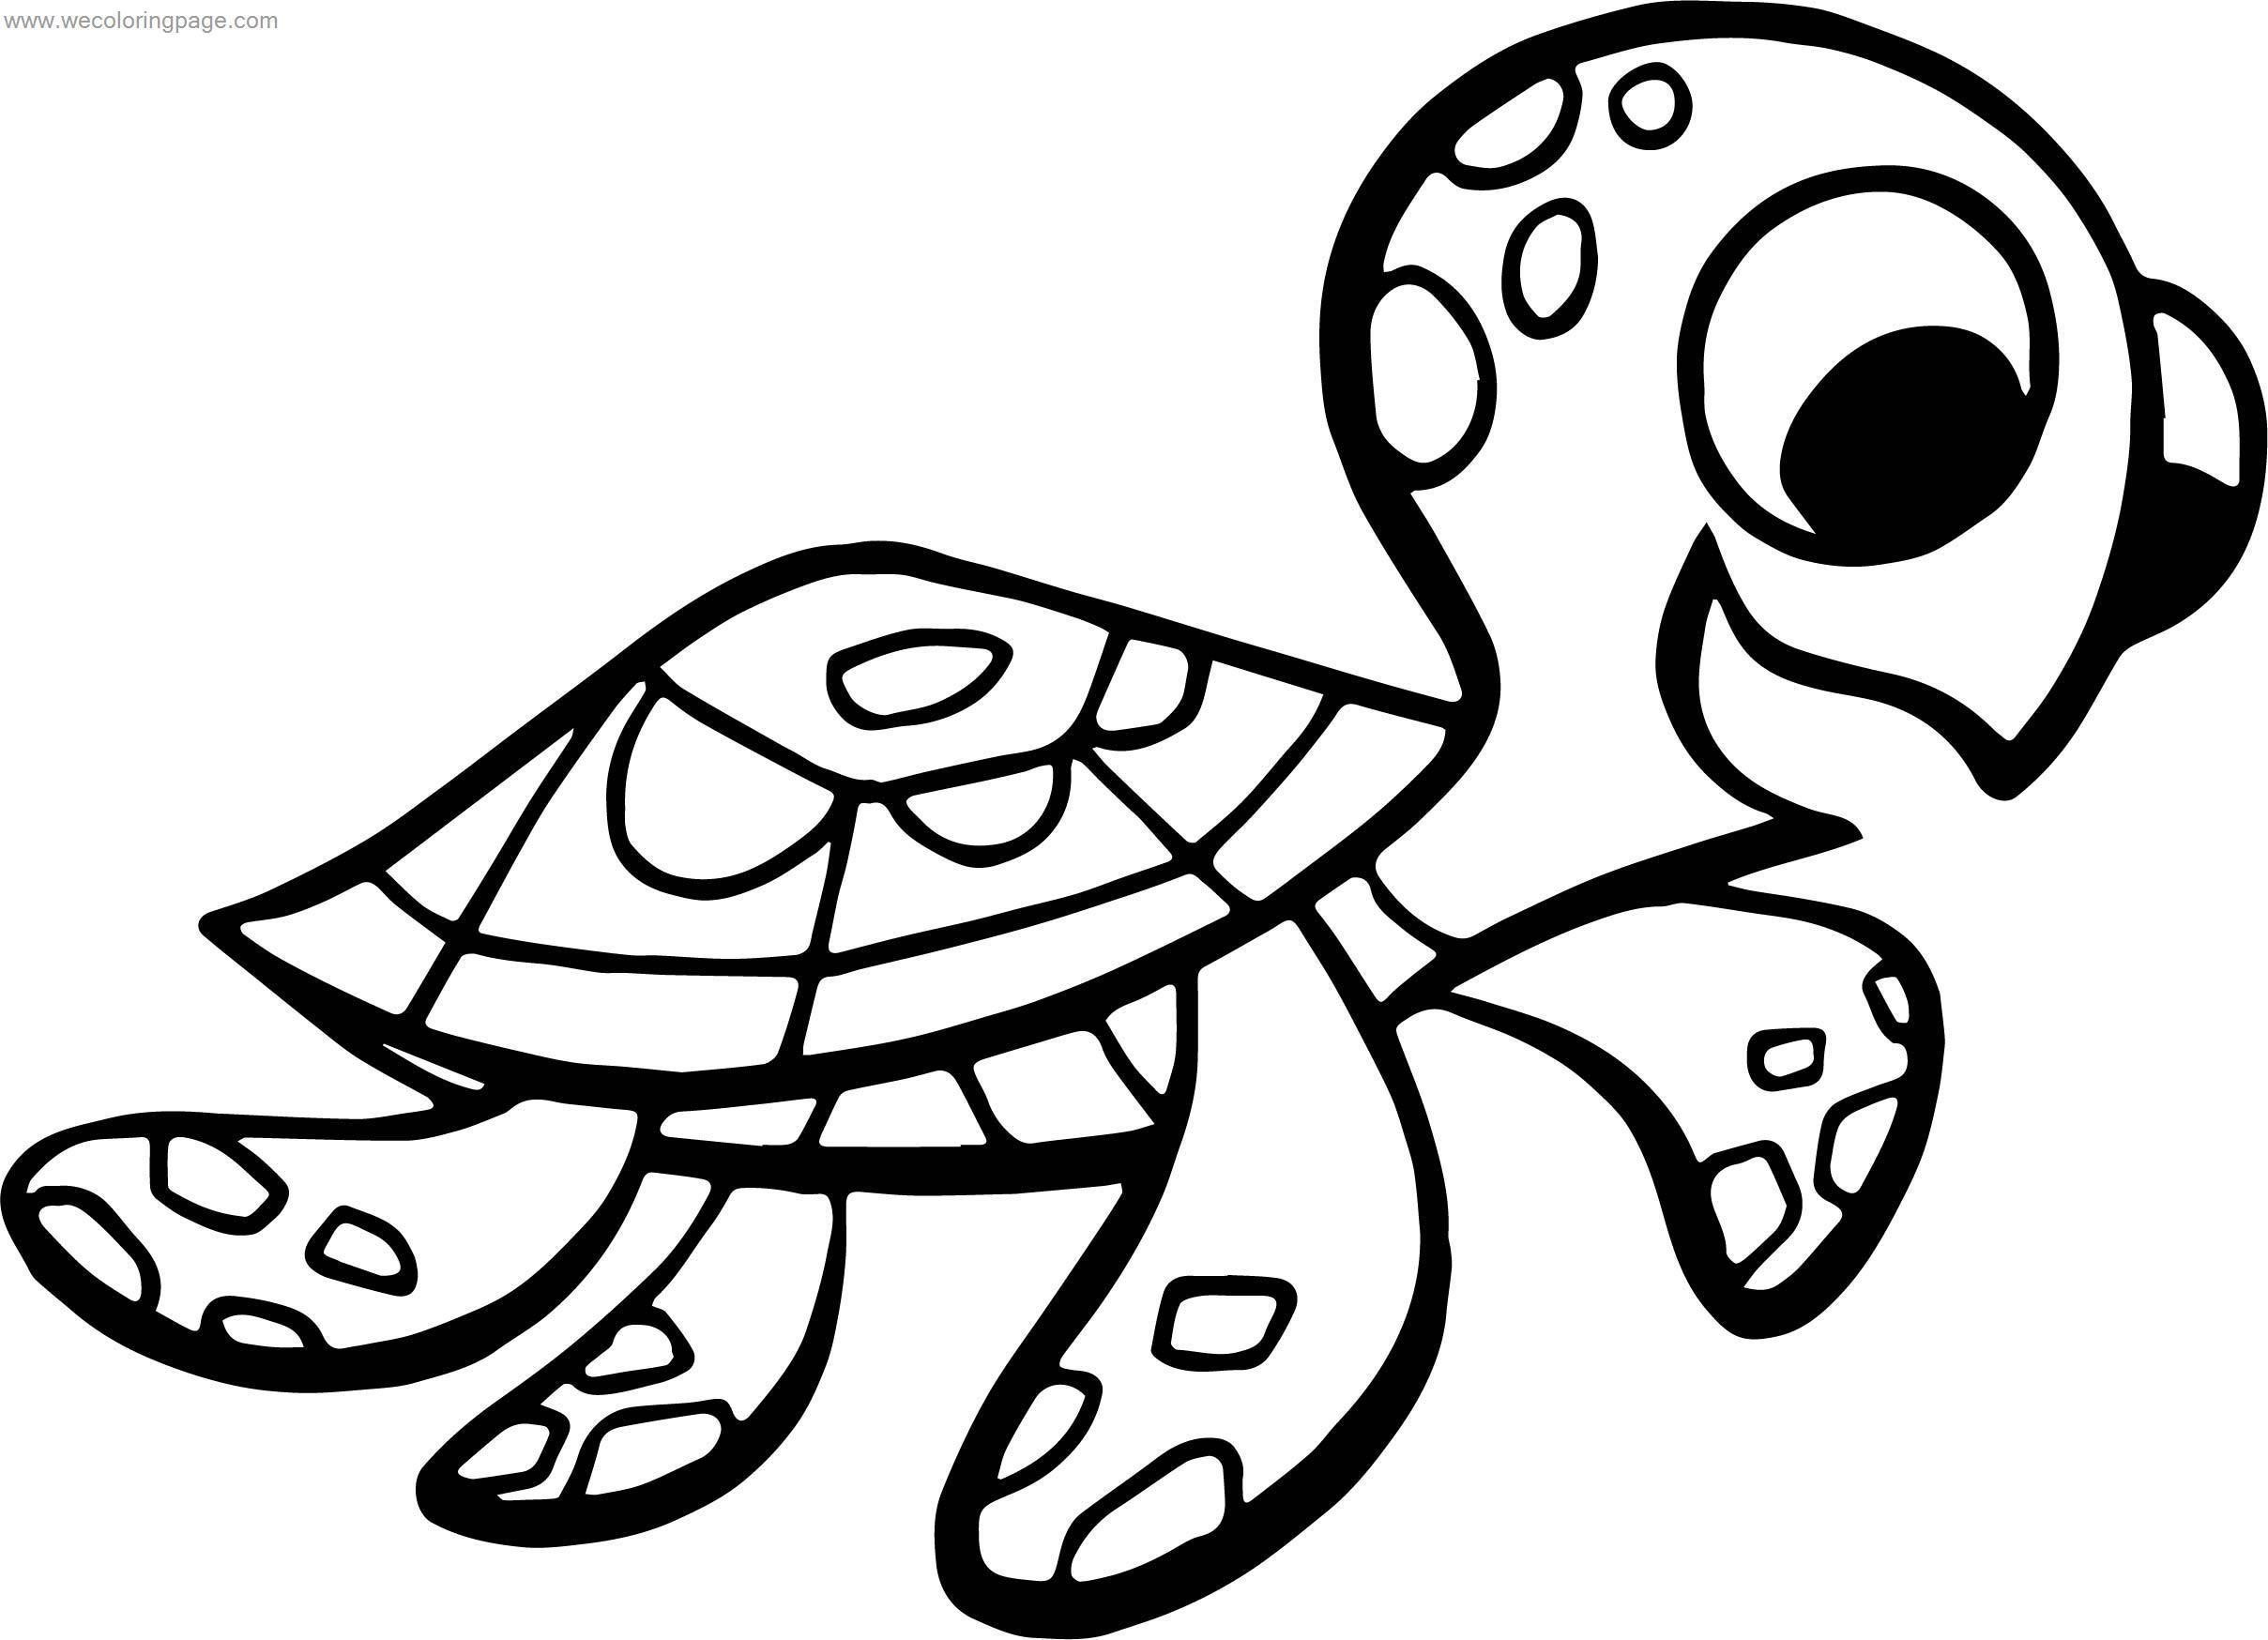 Disney Finding Nemo Small Turtle Coloring Pages ...